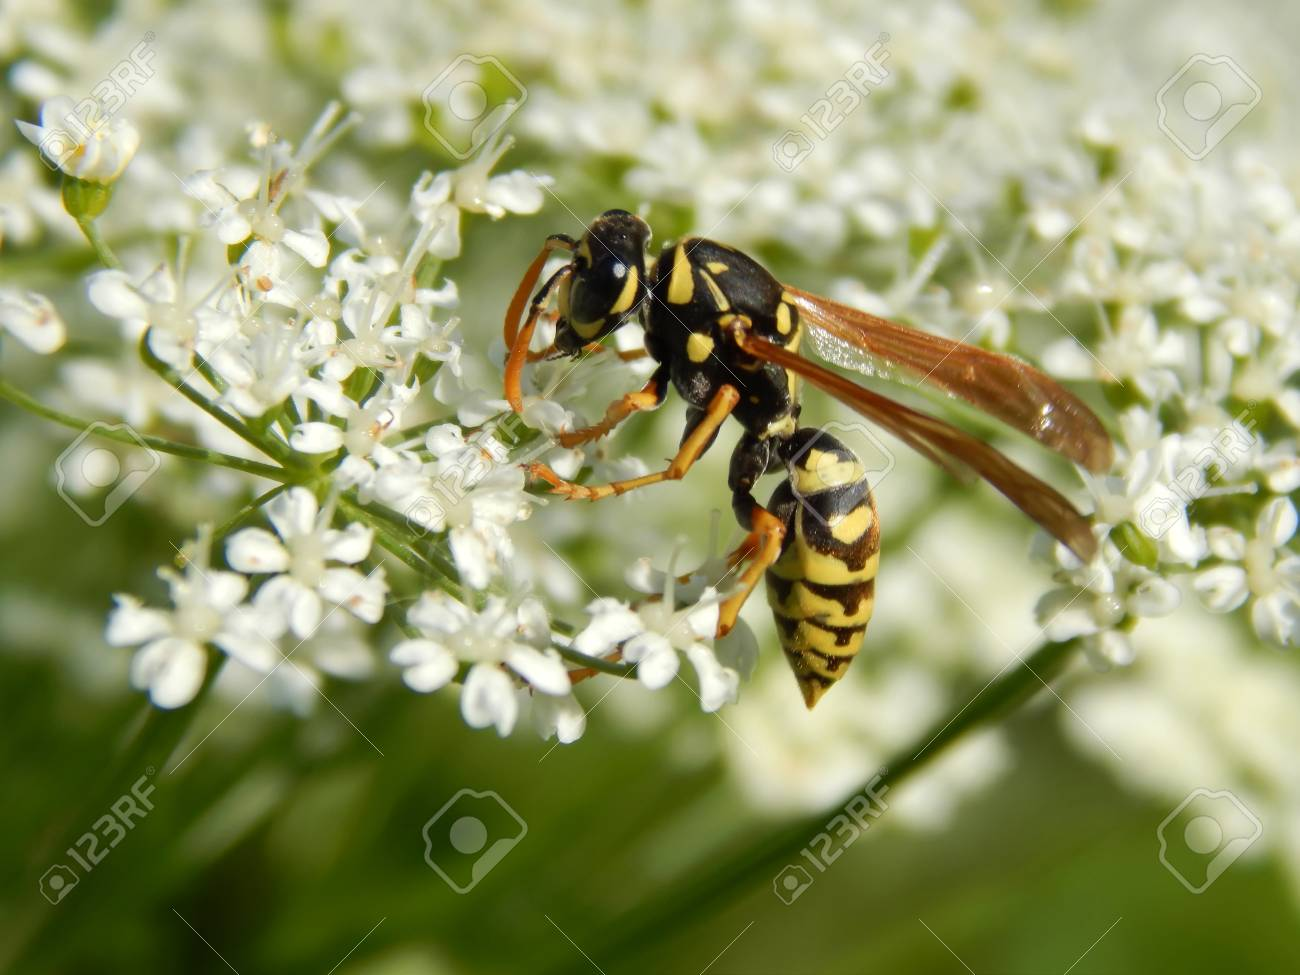 Wild wasp on white meadow flowers close-up - 103189999